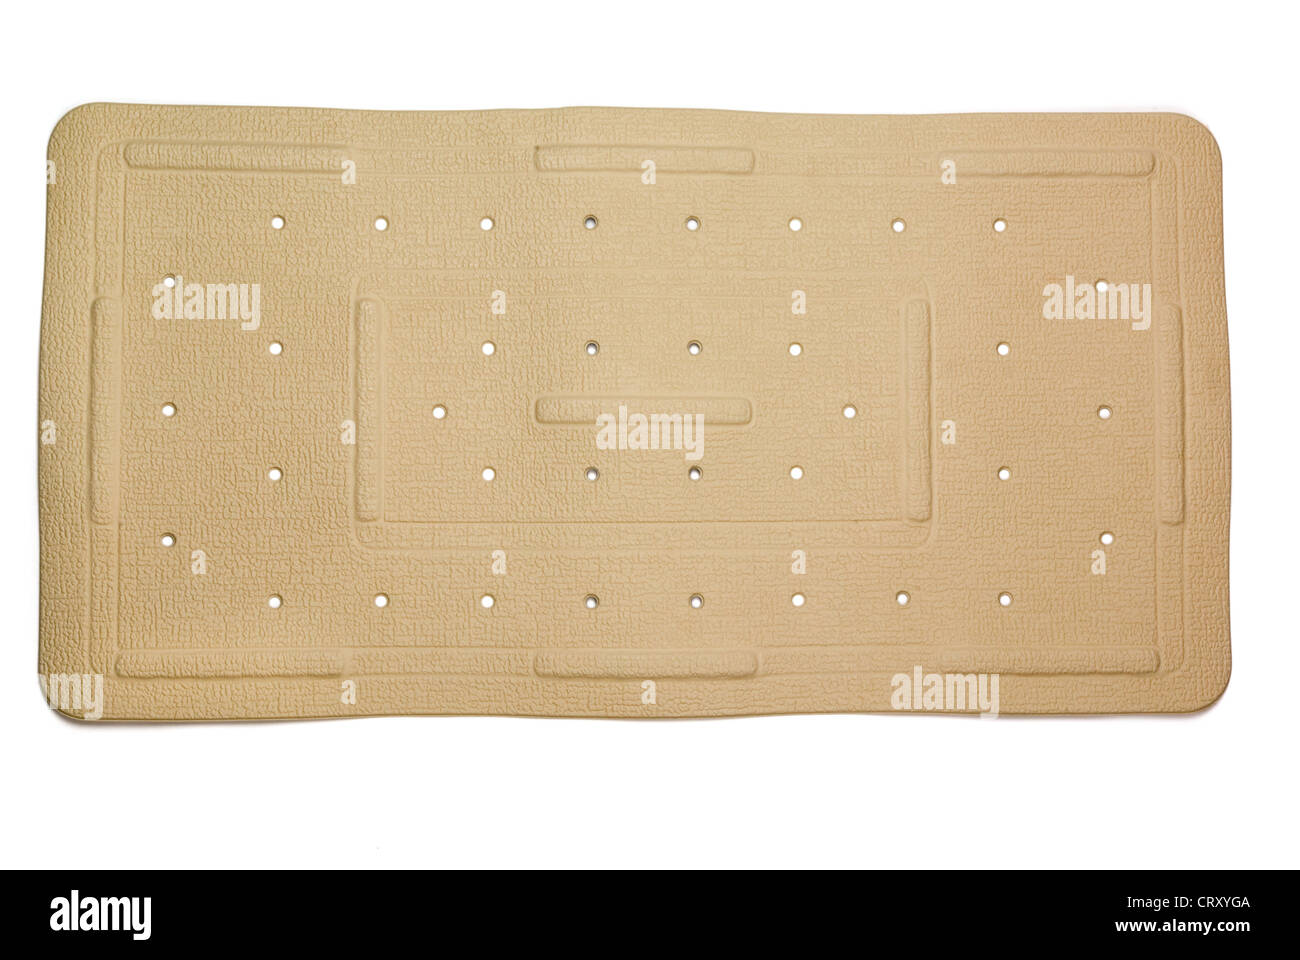 Anti-fungal, slip resistant rubber bath mat isolated on white - Stock Image